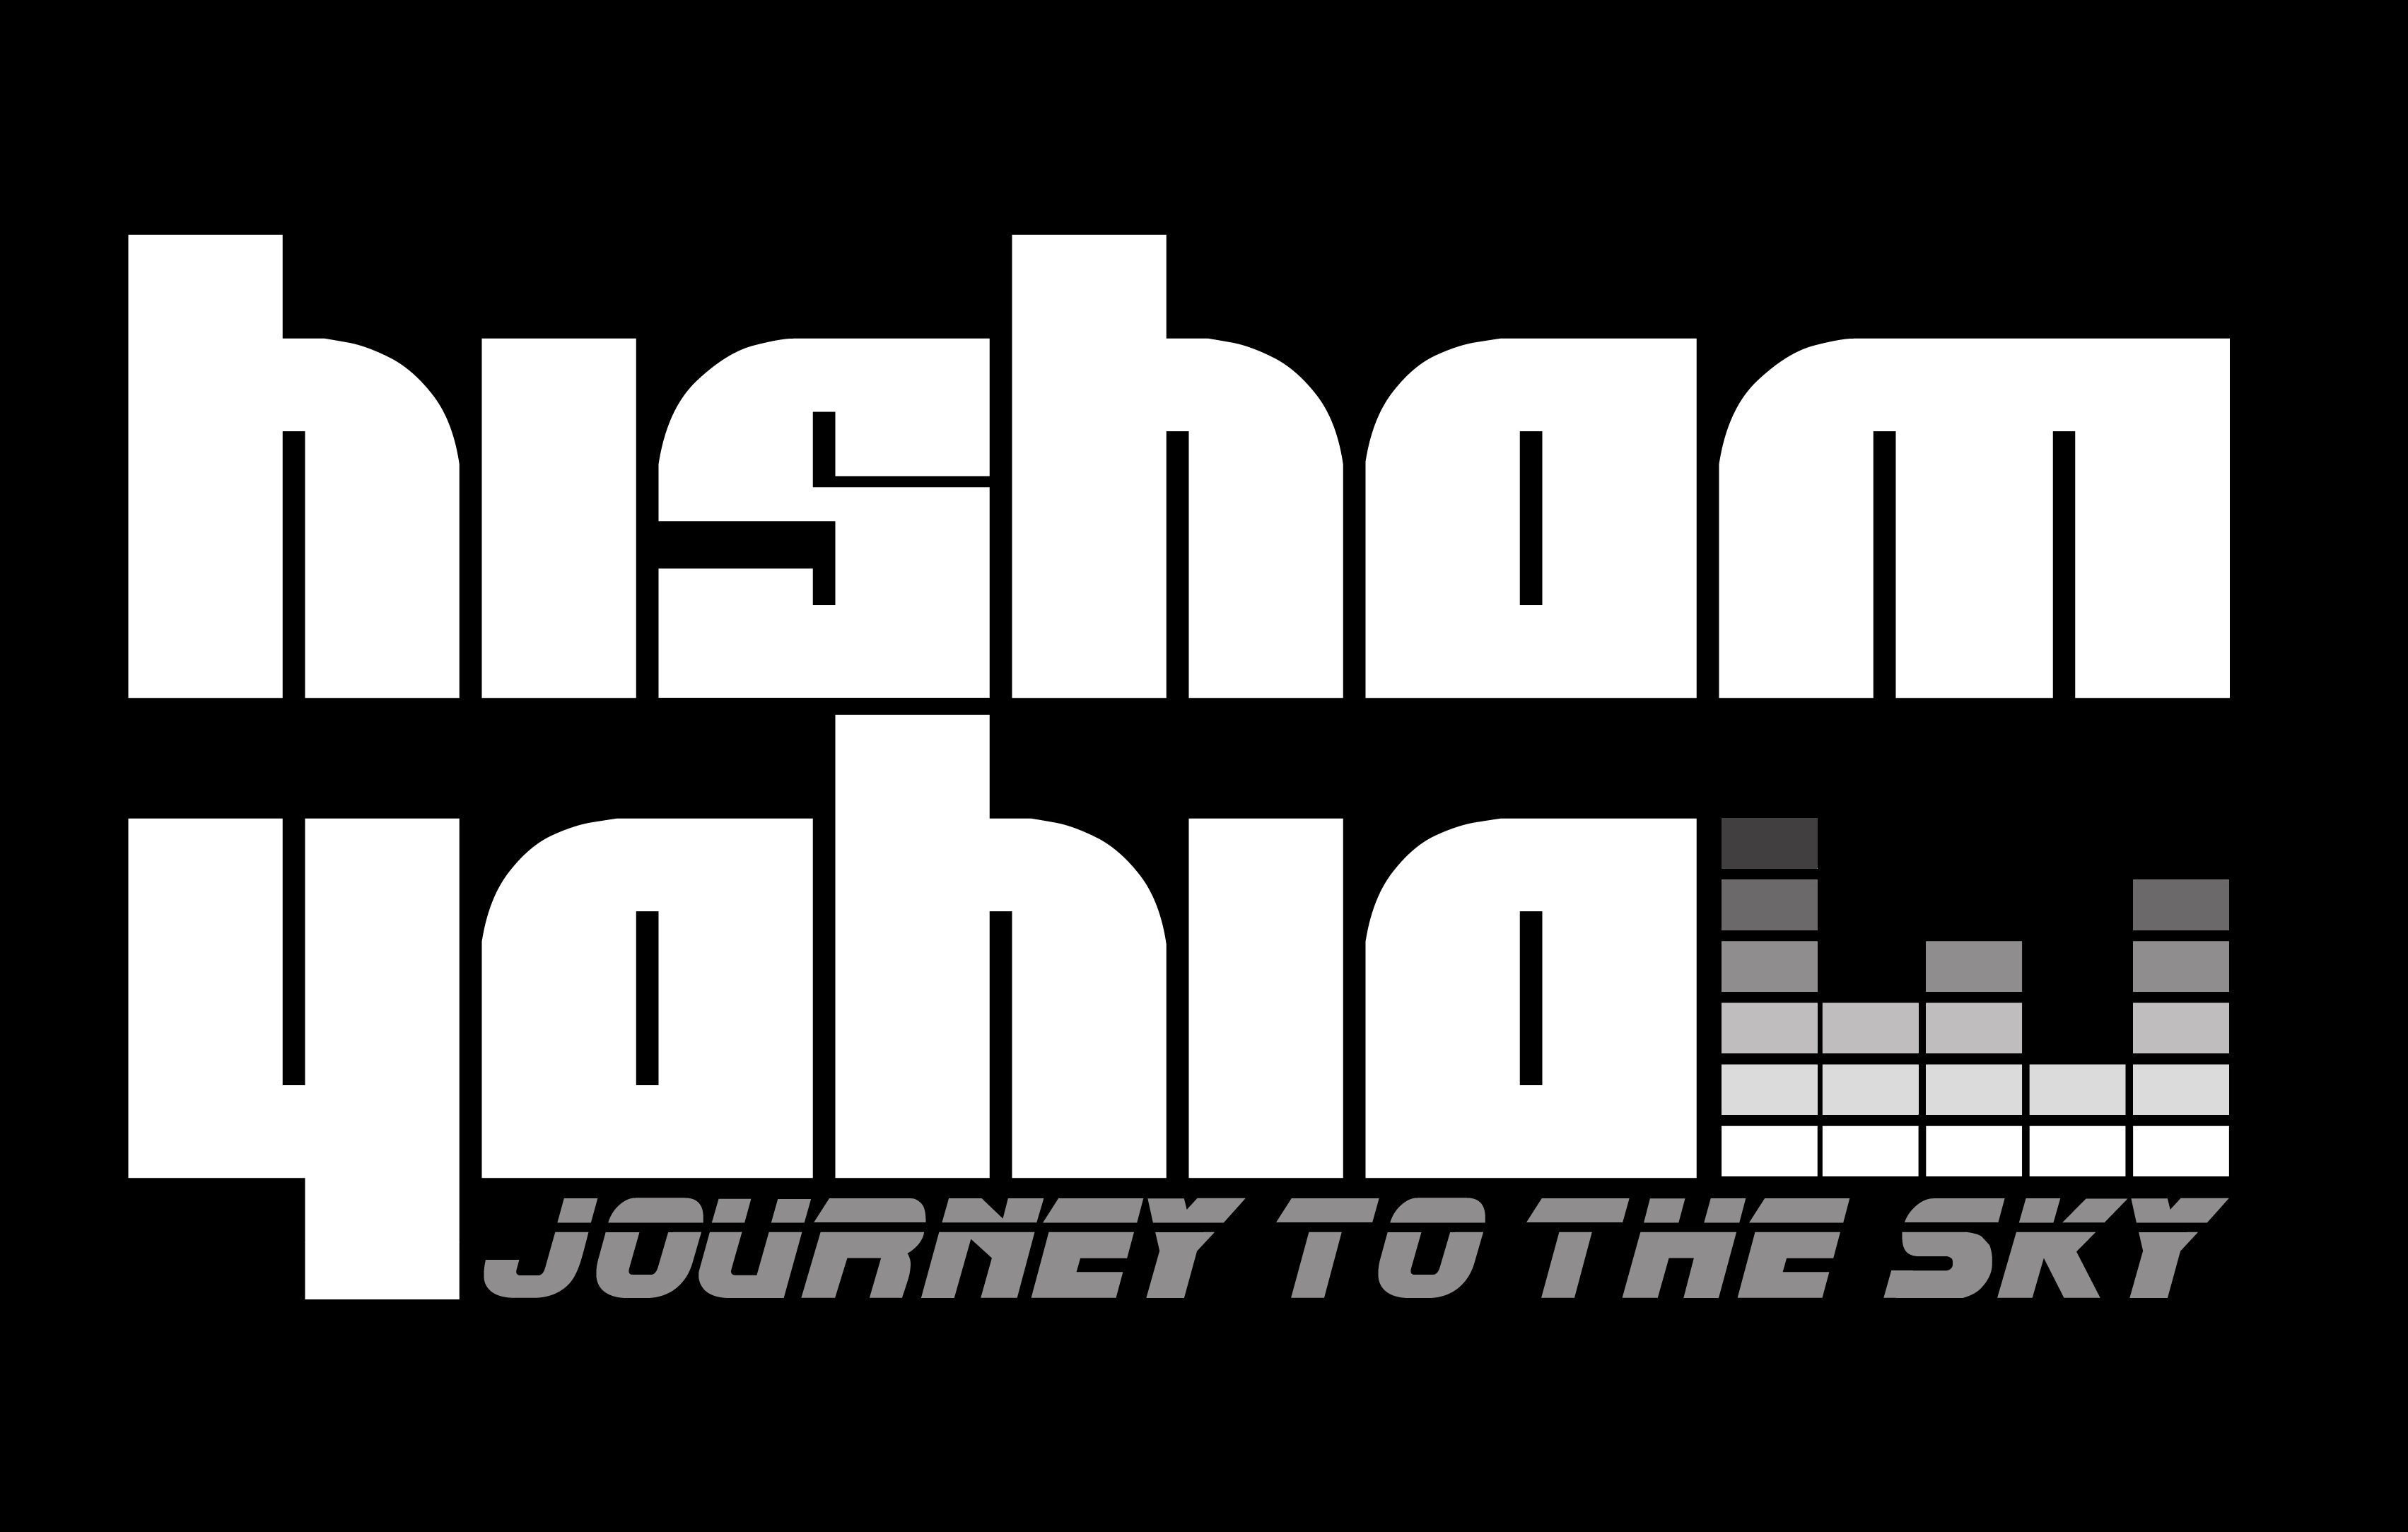 download → Hisham Yahia & Valery Star - Journey To The Sky - Easter Overclocking Mix - 21-Apr-2017